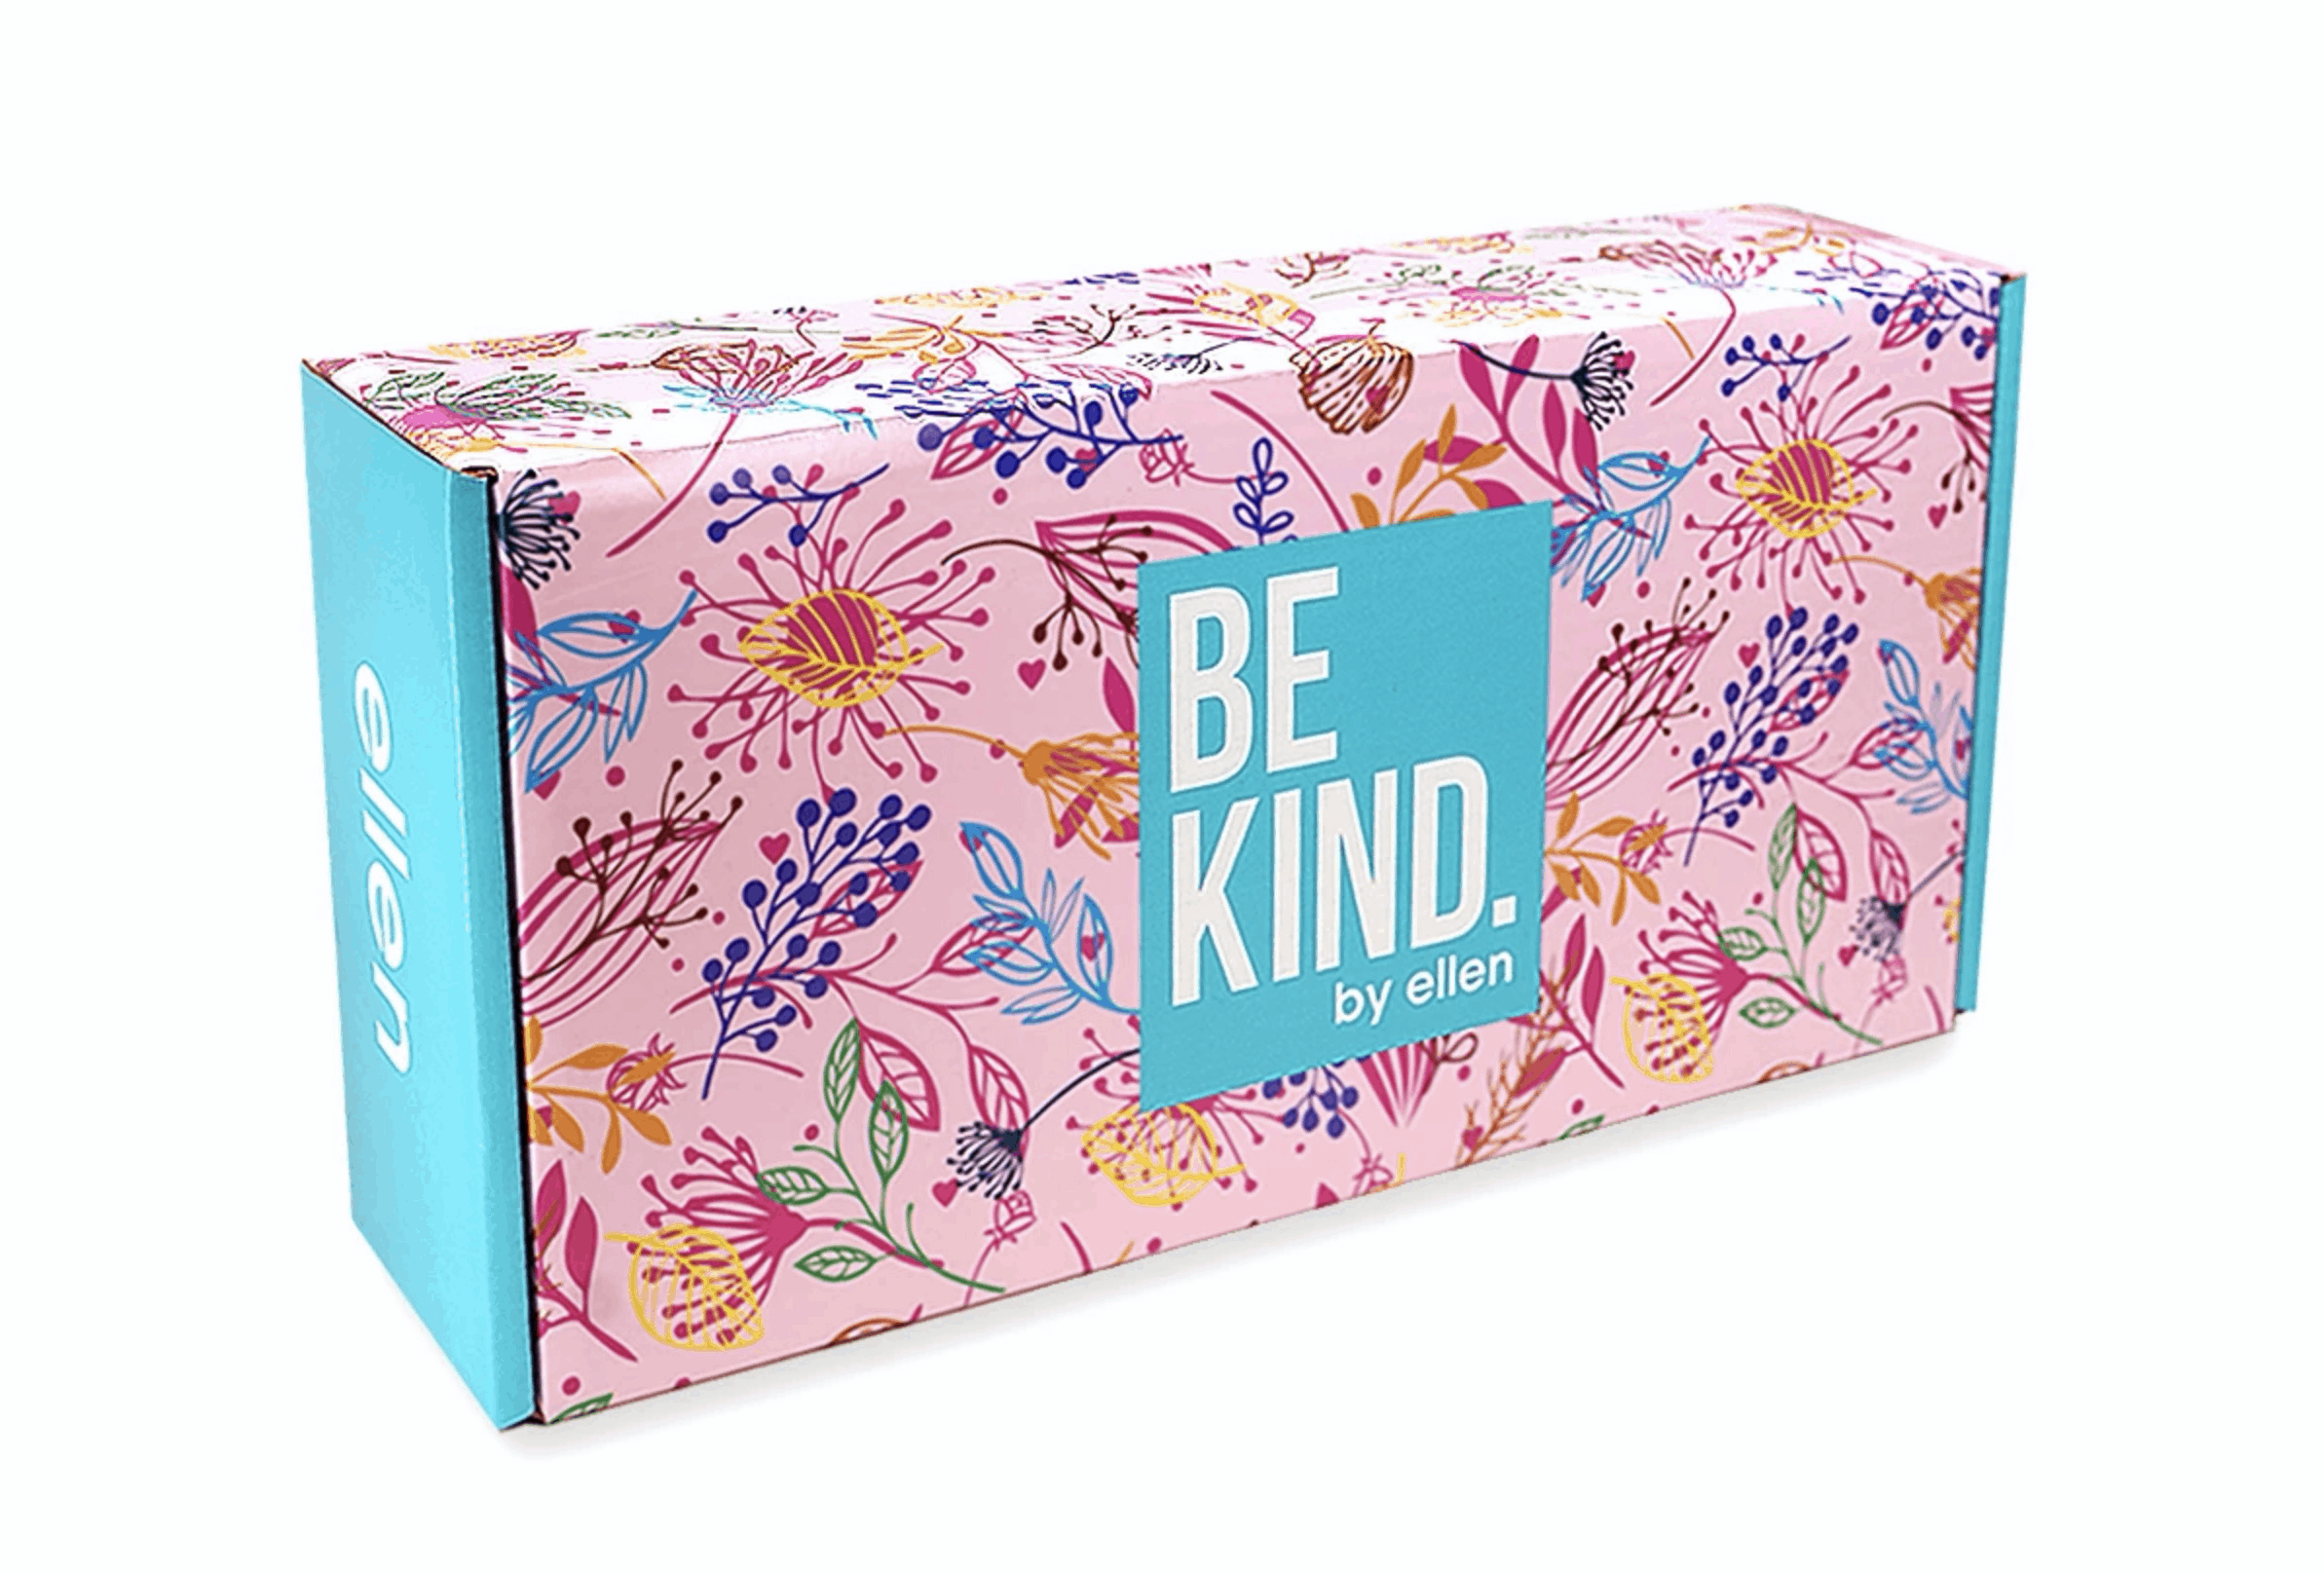 BE KIND by Ellen Box Premium Subscriptions Available Now